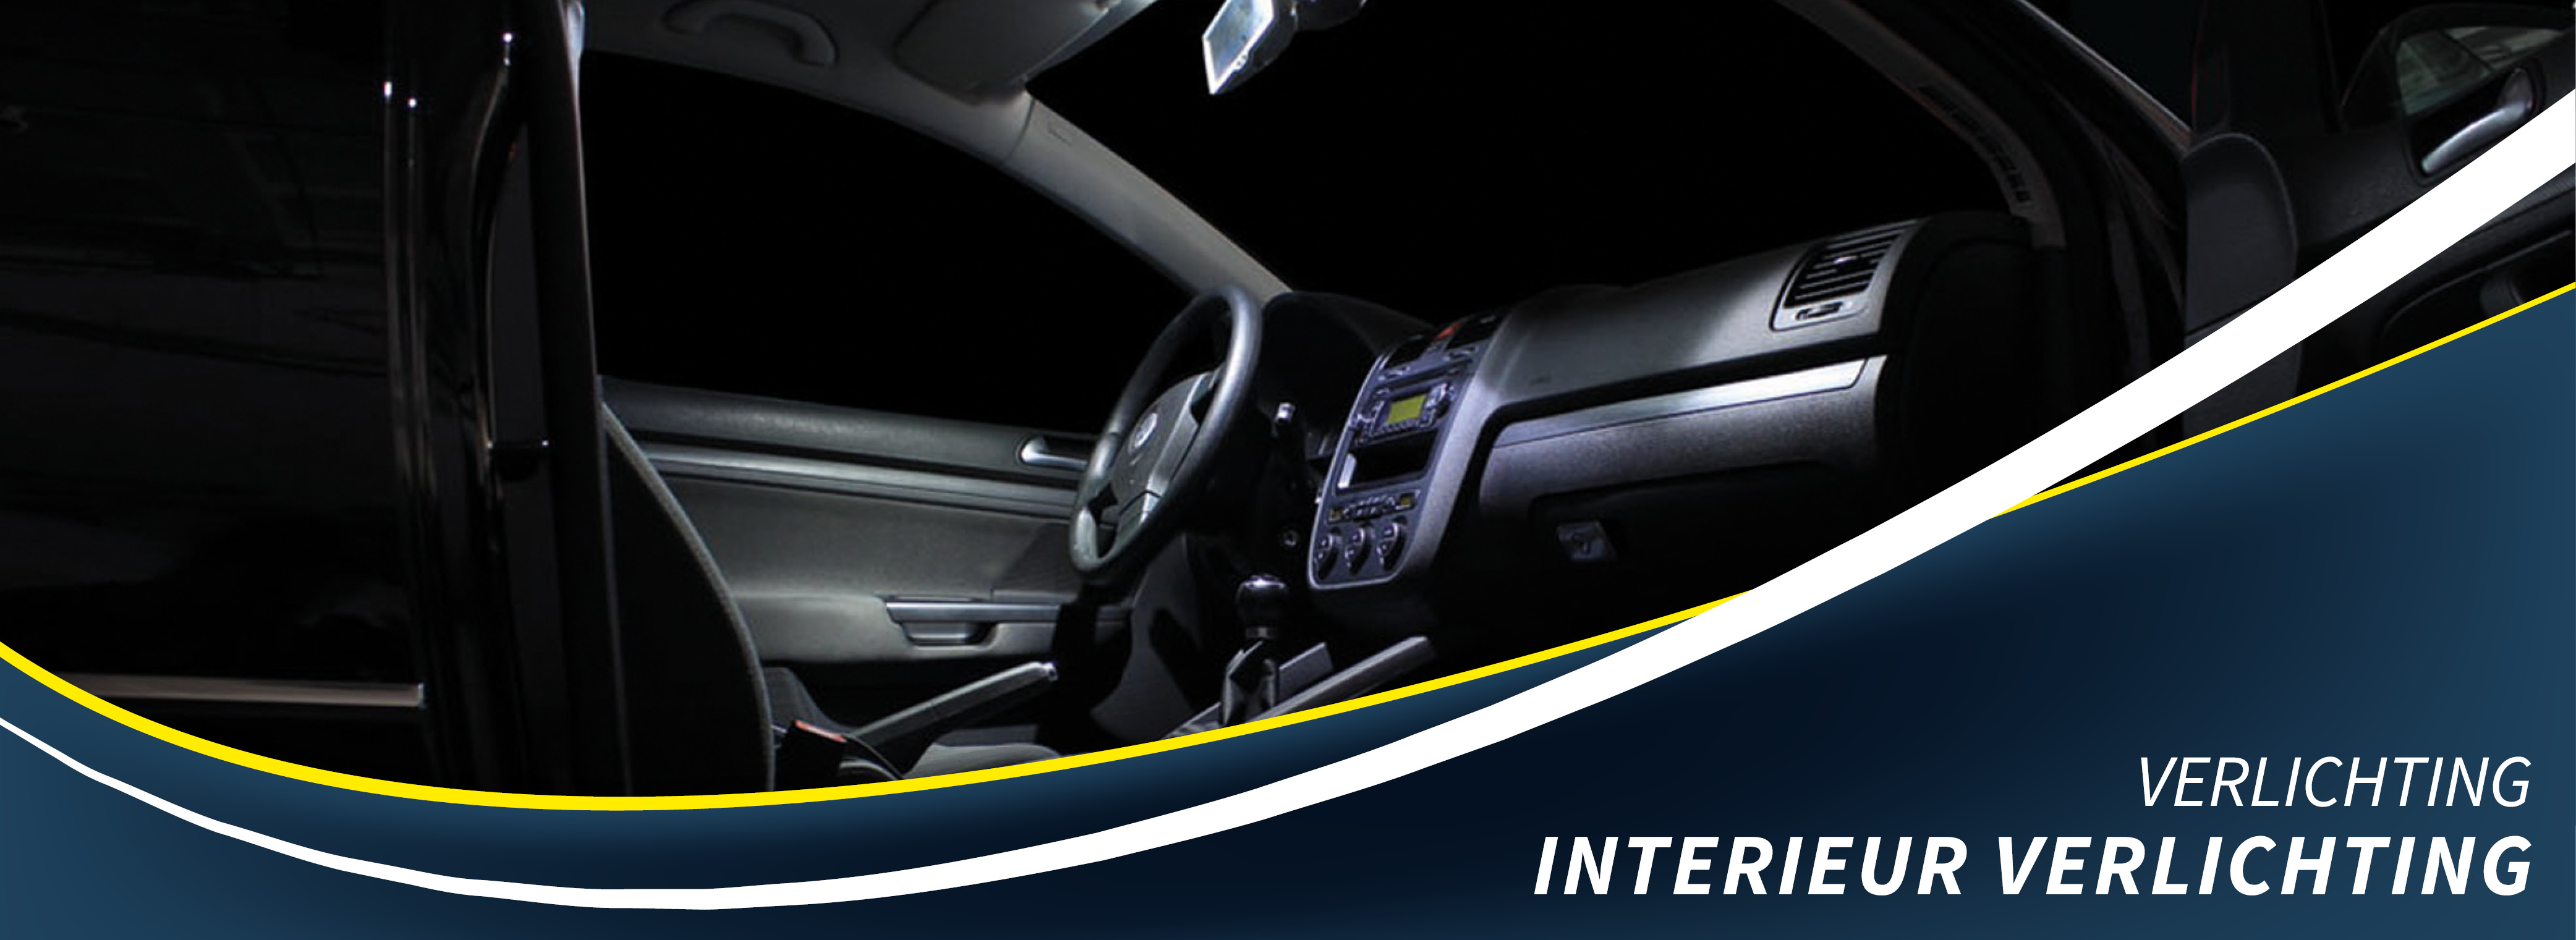 Auto Interieur Lamp Interieur Verlichting Archieven Toma Car Parts